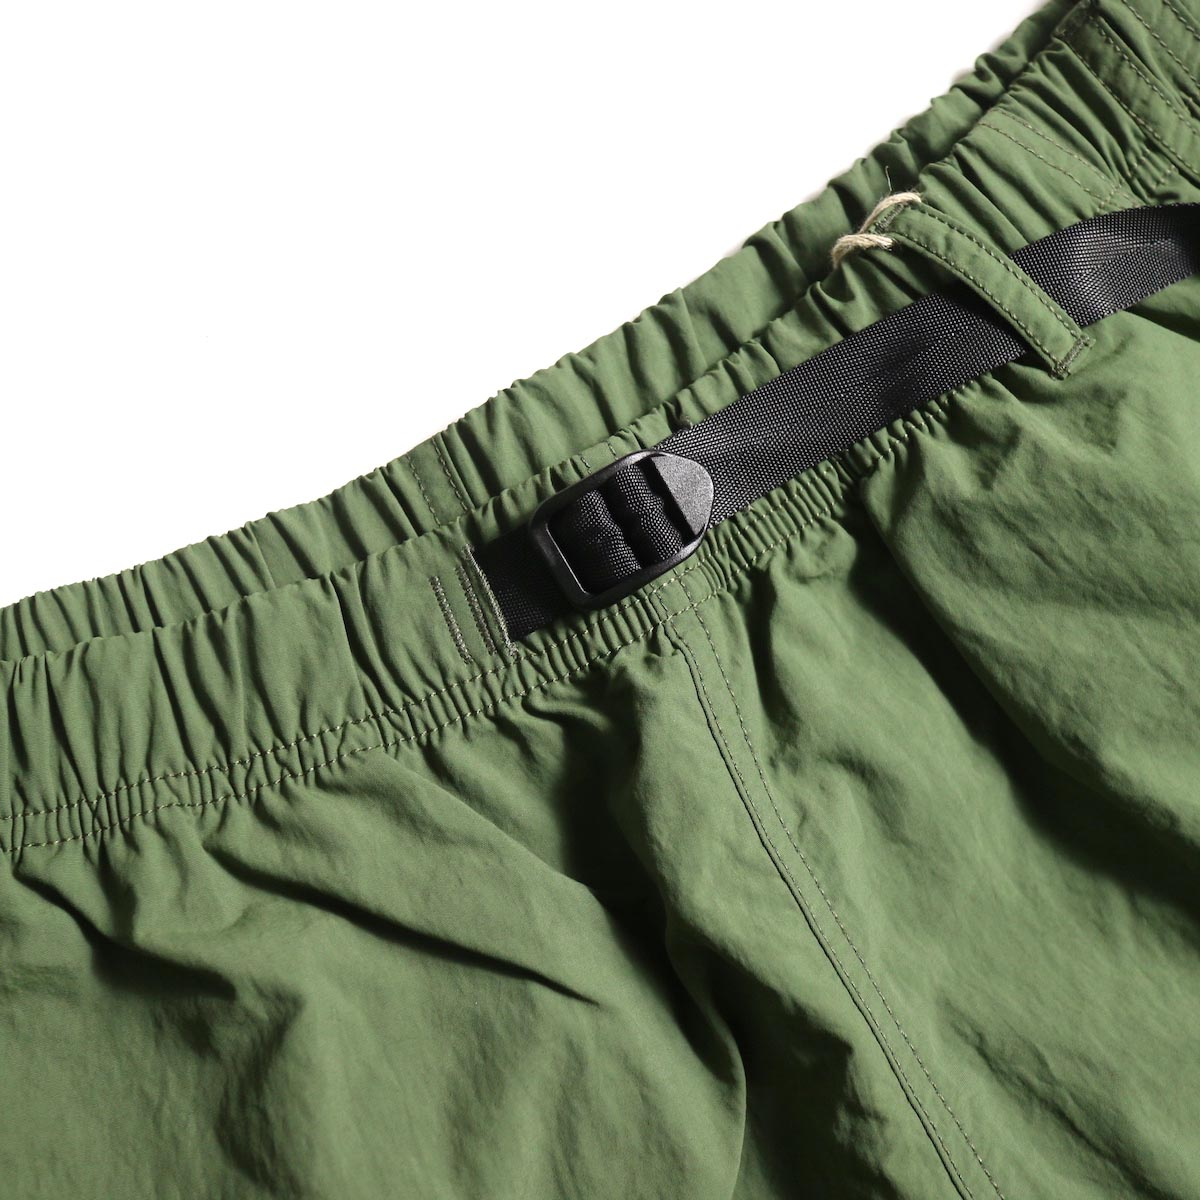 GRAMICCI / Shell Packable Shorts (Olive)ウエスト